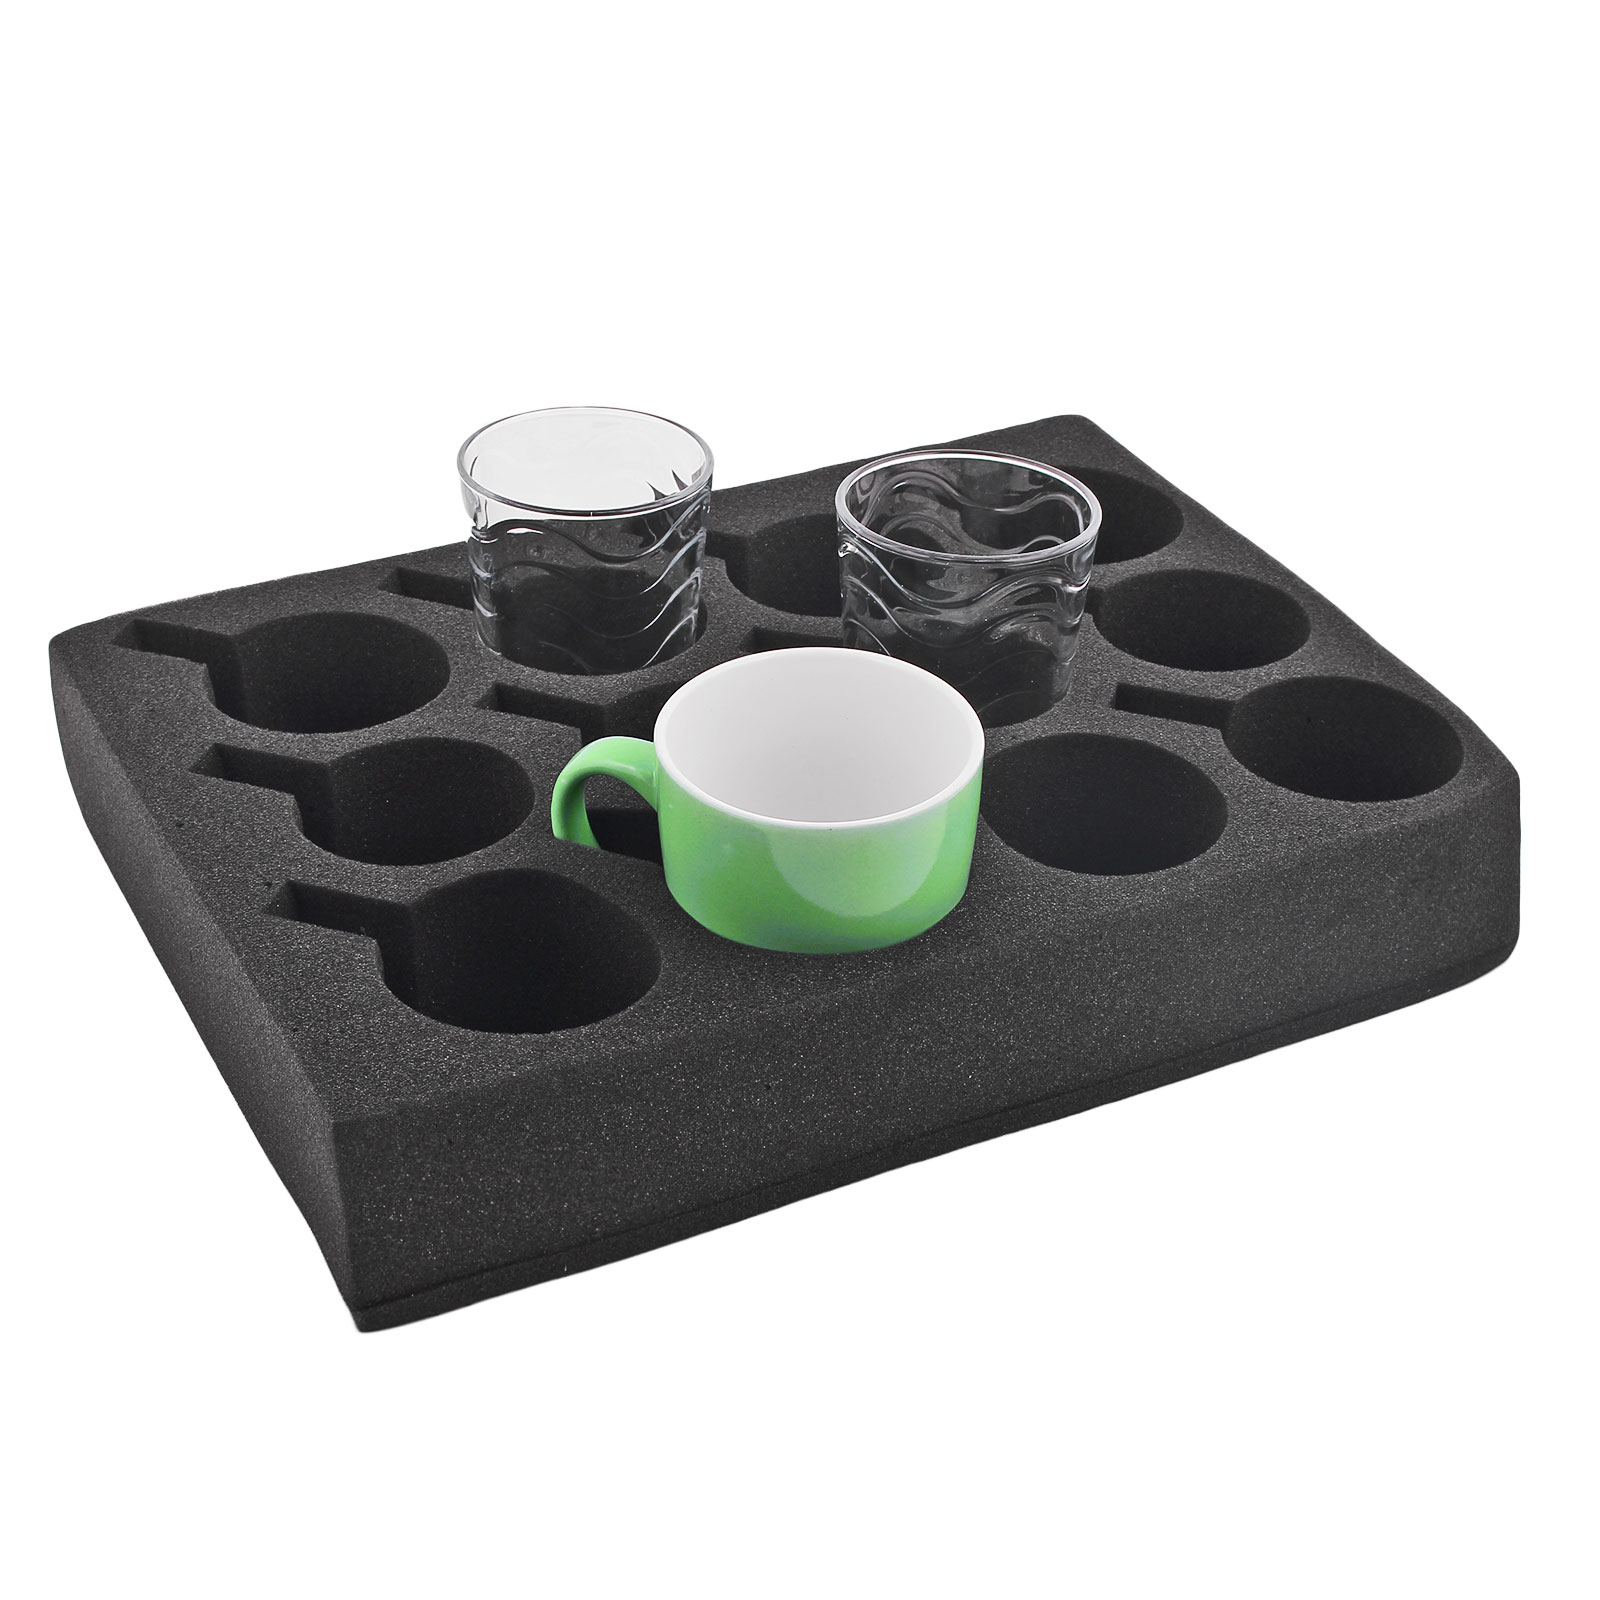 Cupholders glass holder 12 he black special foam 330x245x60 mm